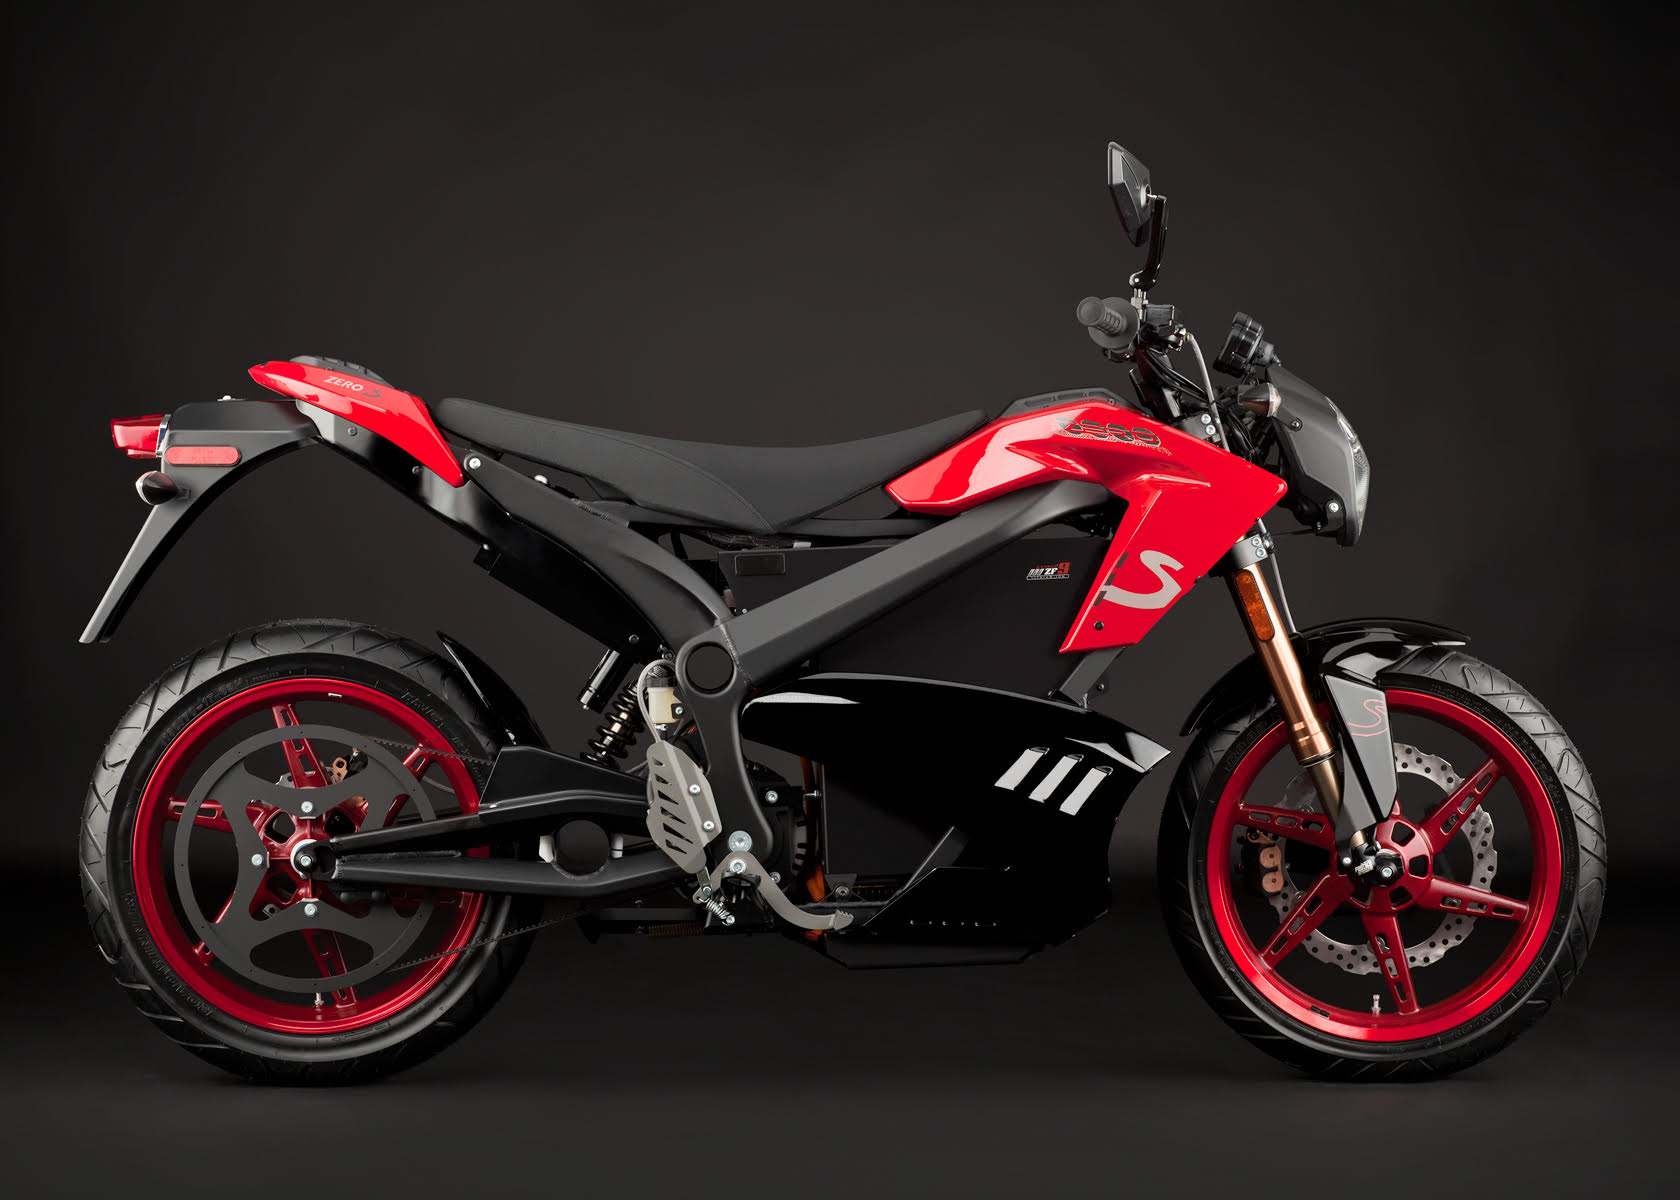 Zero recalls all 2012 model year motorcycles due to fire risk